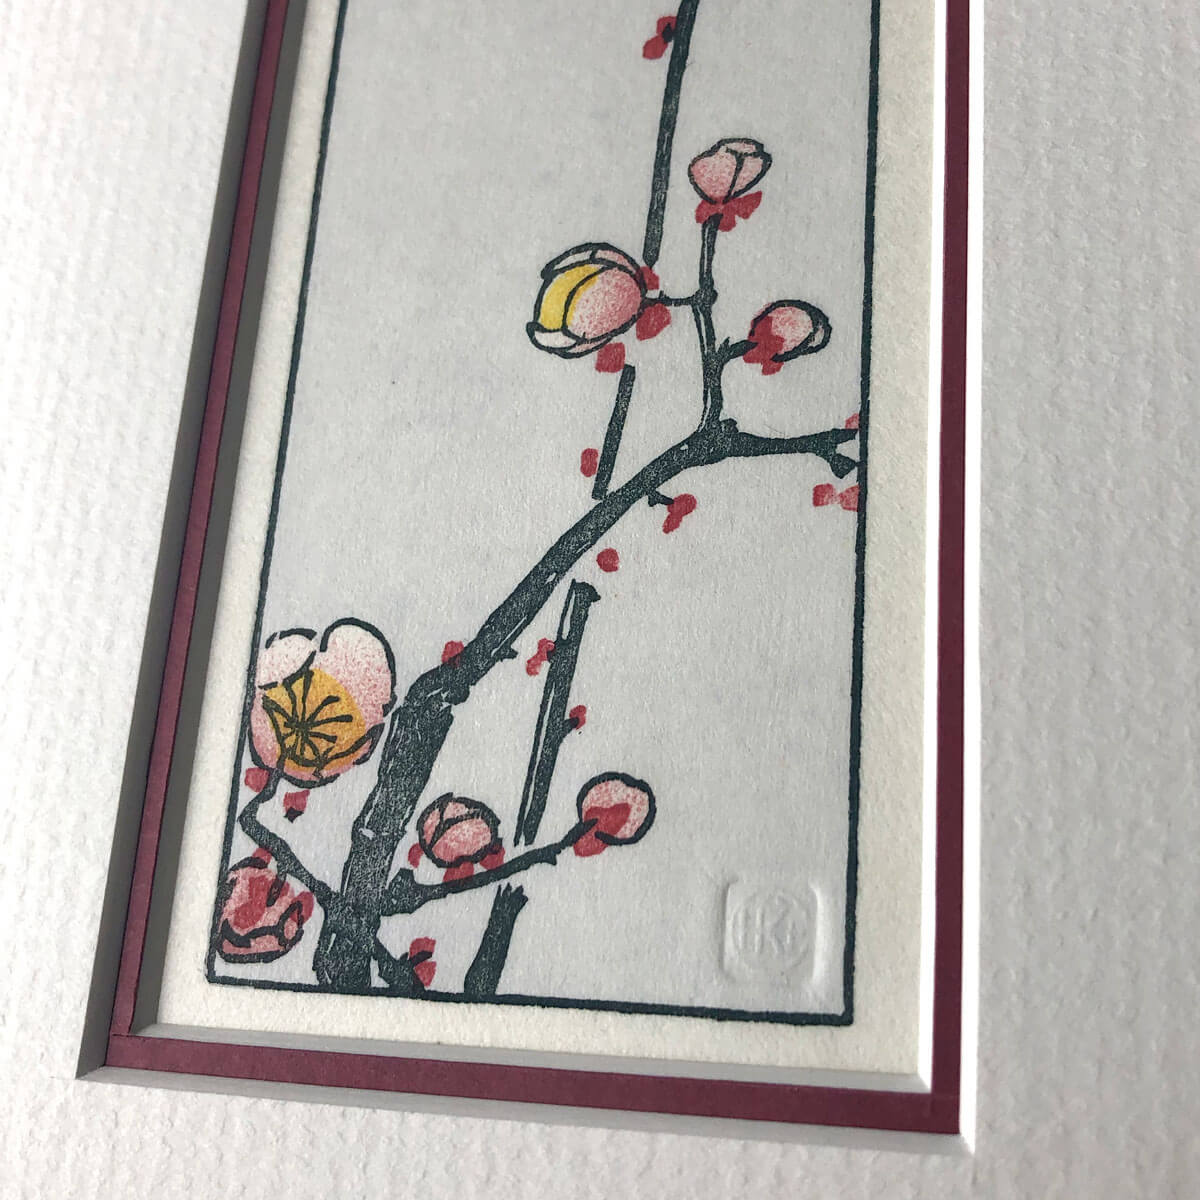 handmade woodblock print of slim branch with pale pink plum blossoms against a pale blue grey background